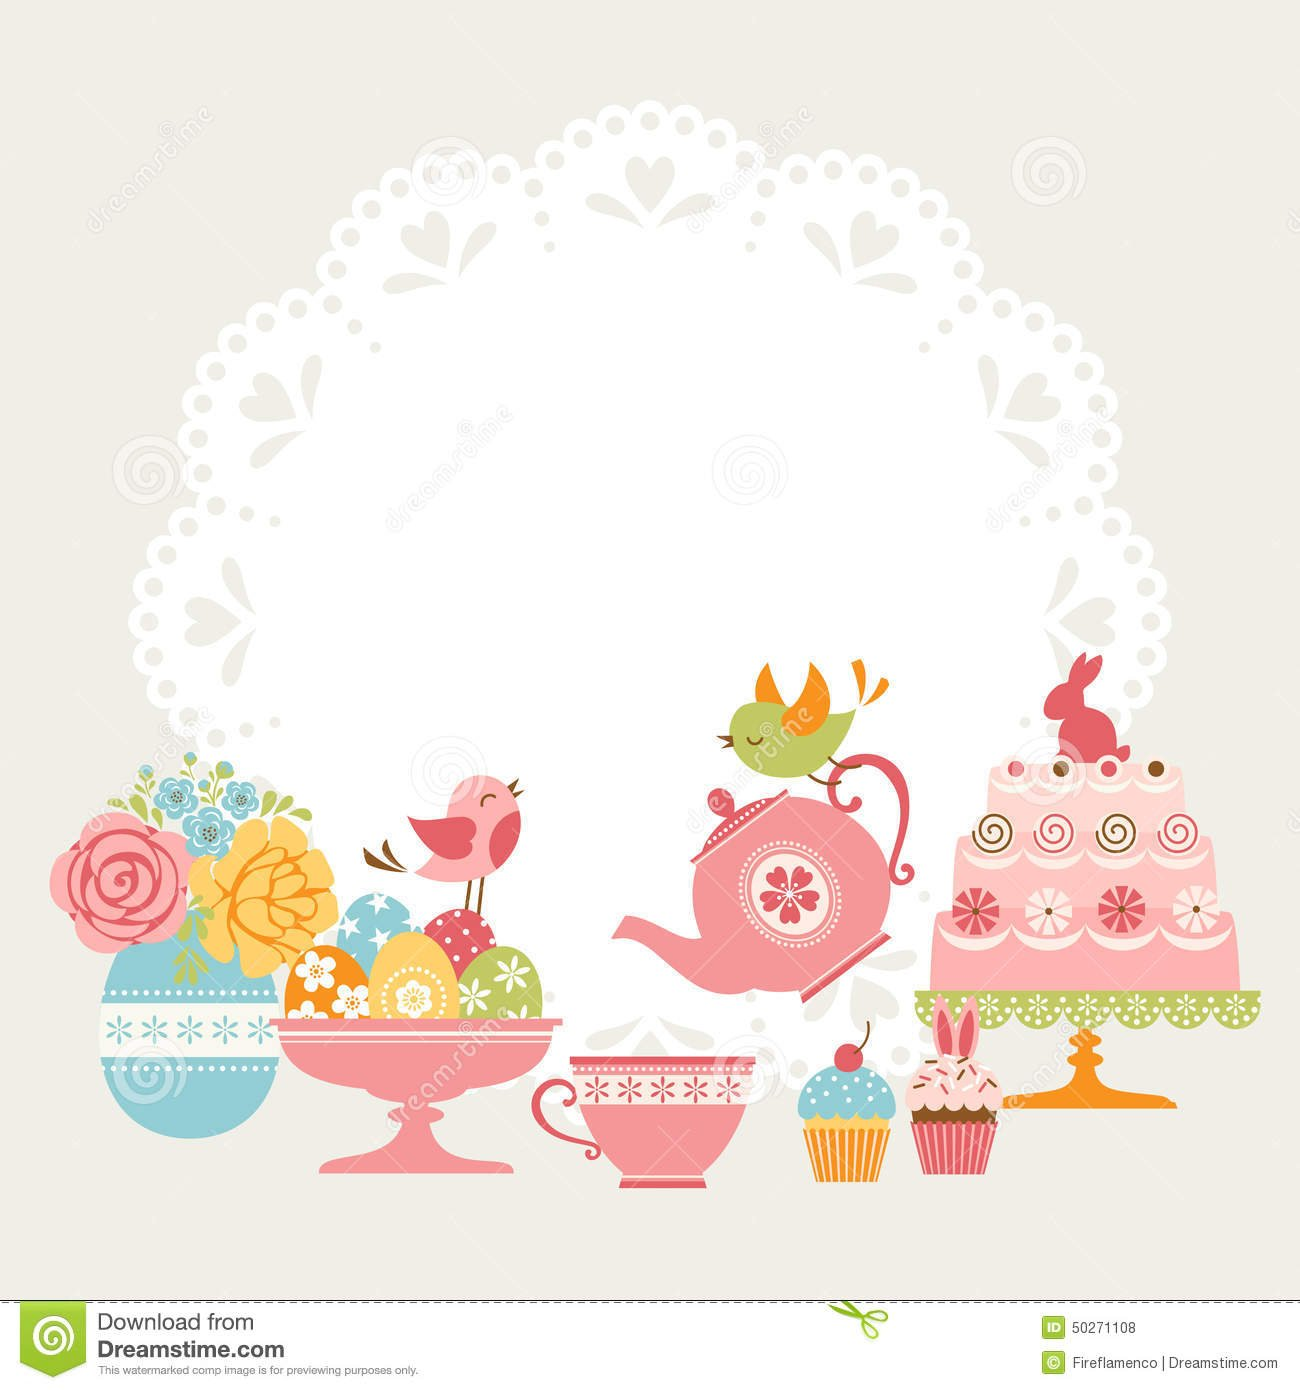 Easter Tea Party Stock Vector  Illustration Of Eggs, Cute